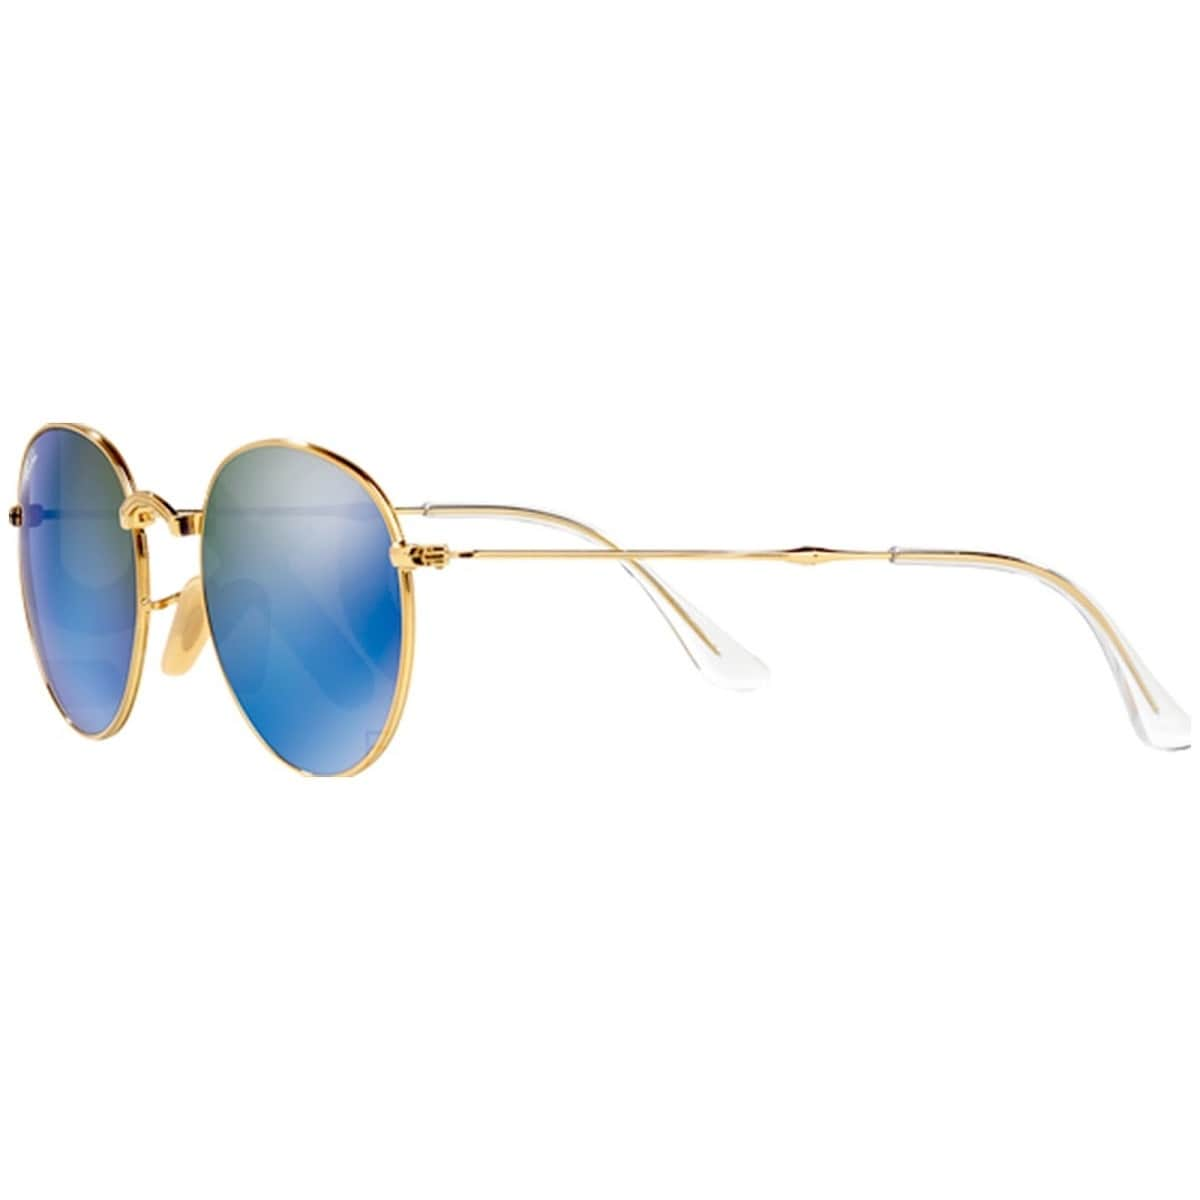 97108d57863 Shop Ray-Ban RB3532 001 68 Round Metal Folding Gold Frame Blue .